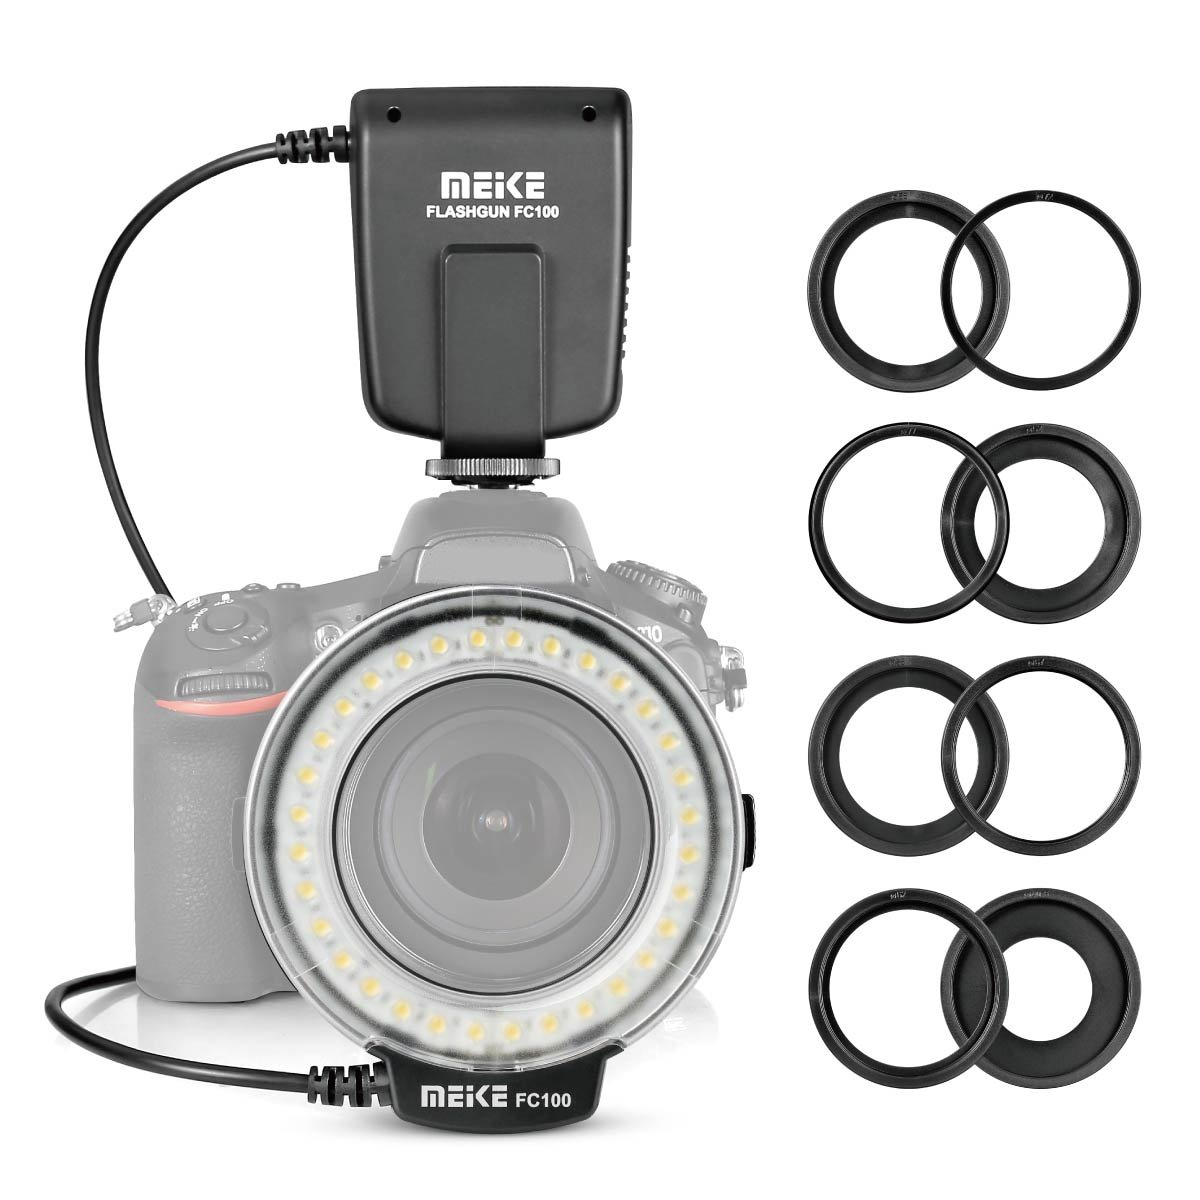 Meike FC100 Macro Ring Flash LED for Canon Nikon Pentax Olympus DSLR Camera Camcorder with Adapter Rings by Meike